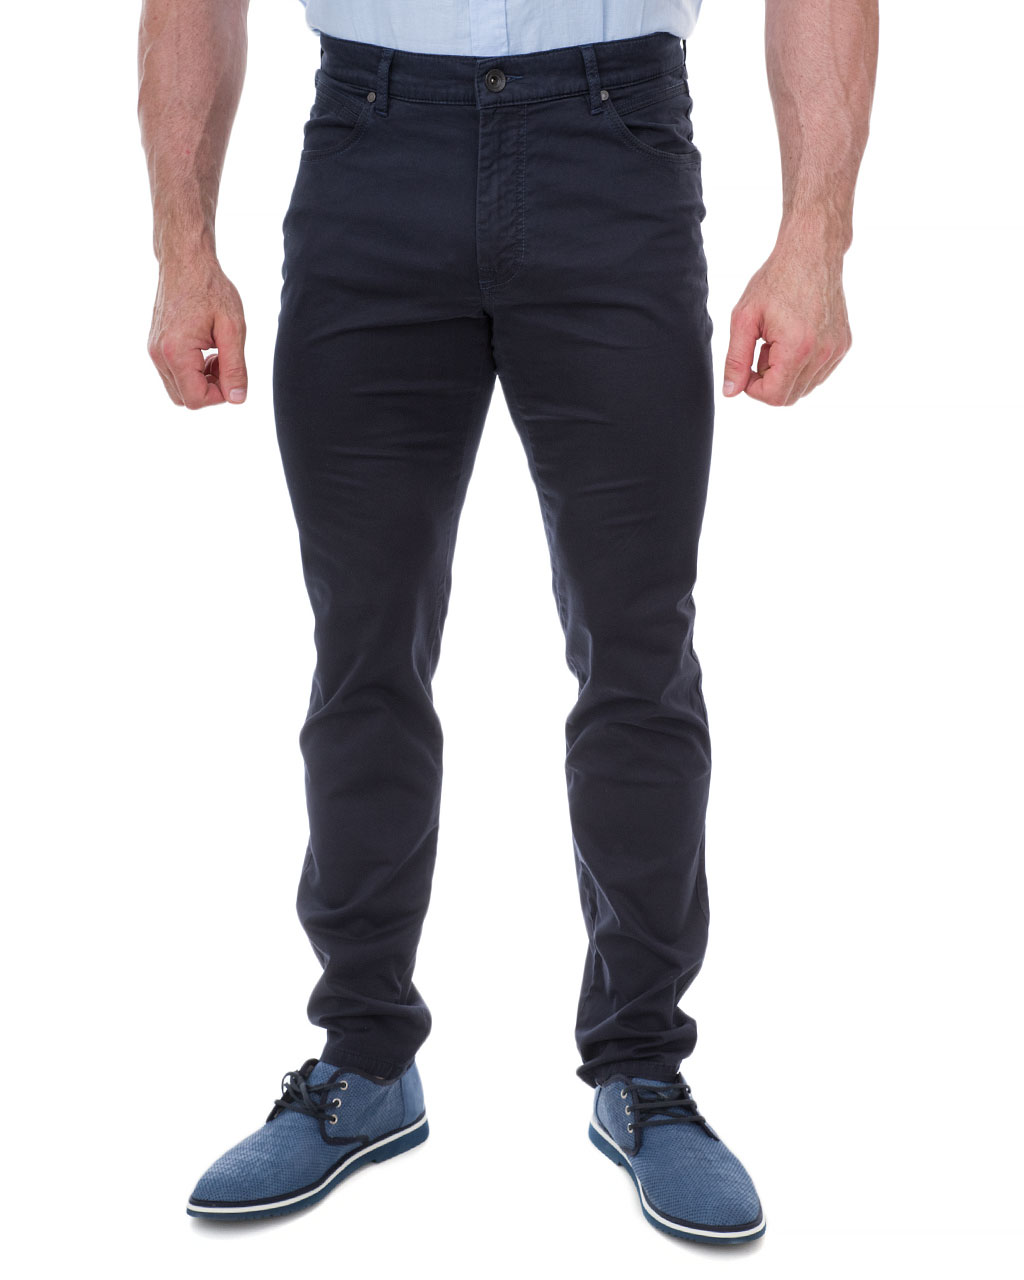 Men's trousers 3034-36243-390/93 (1)